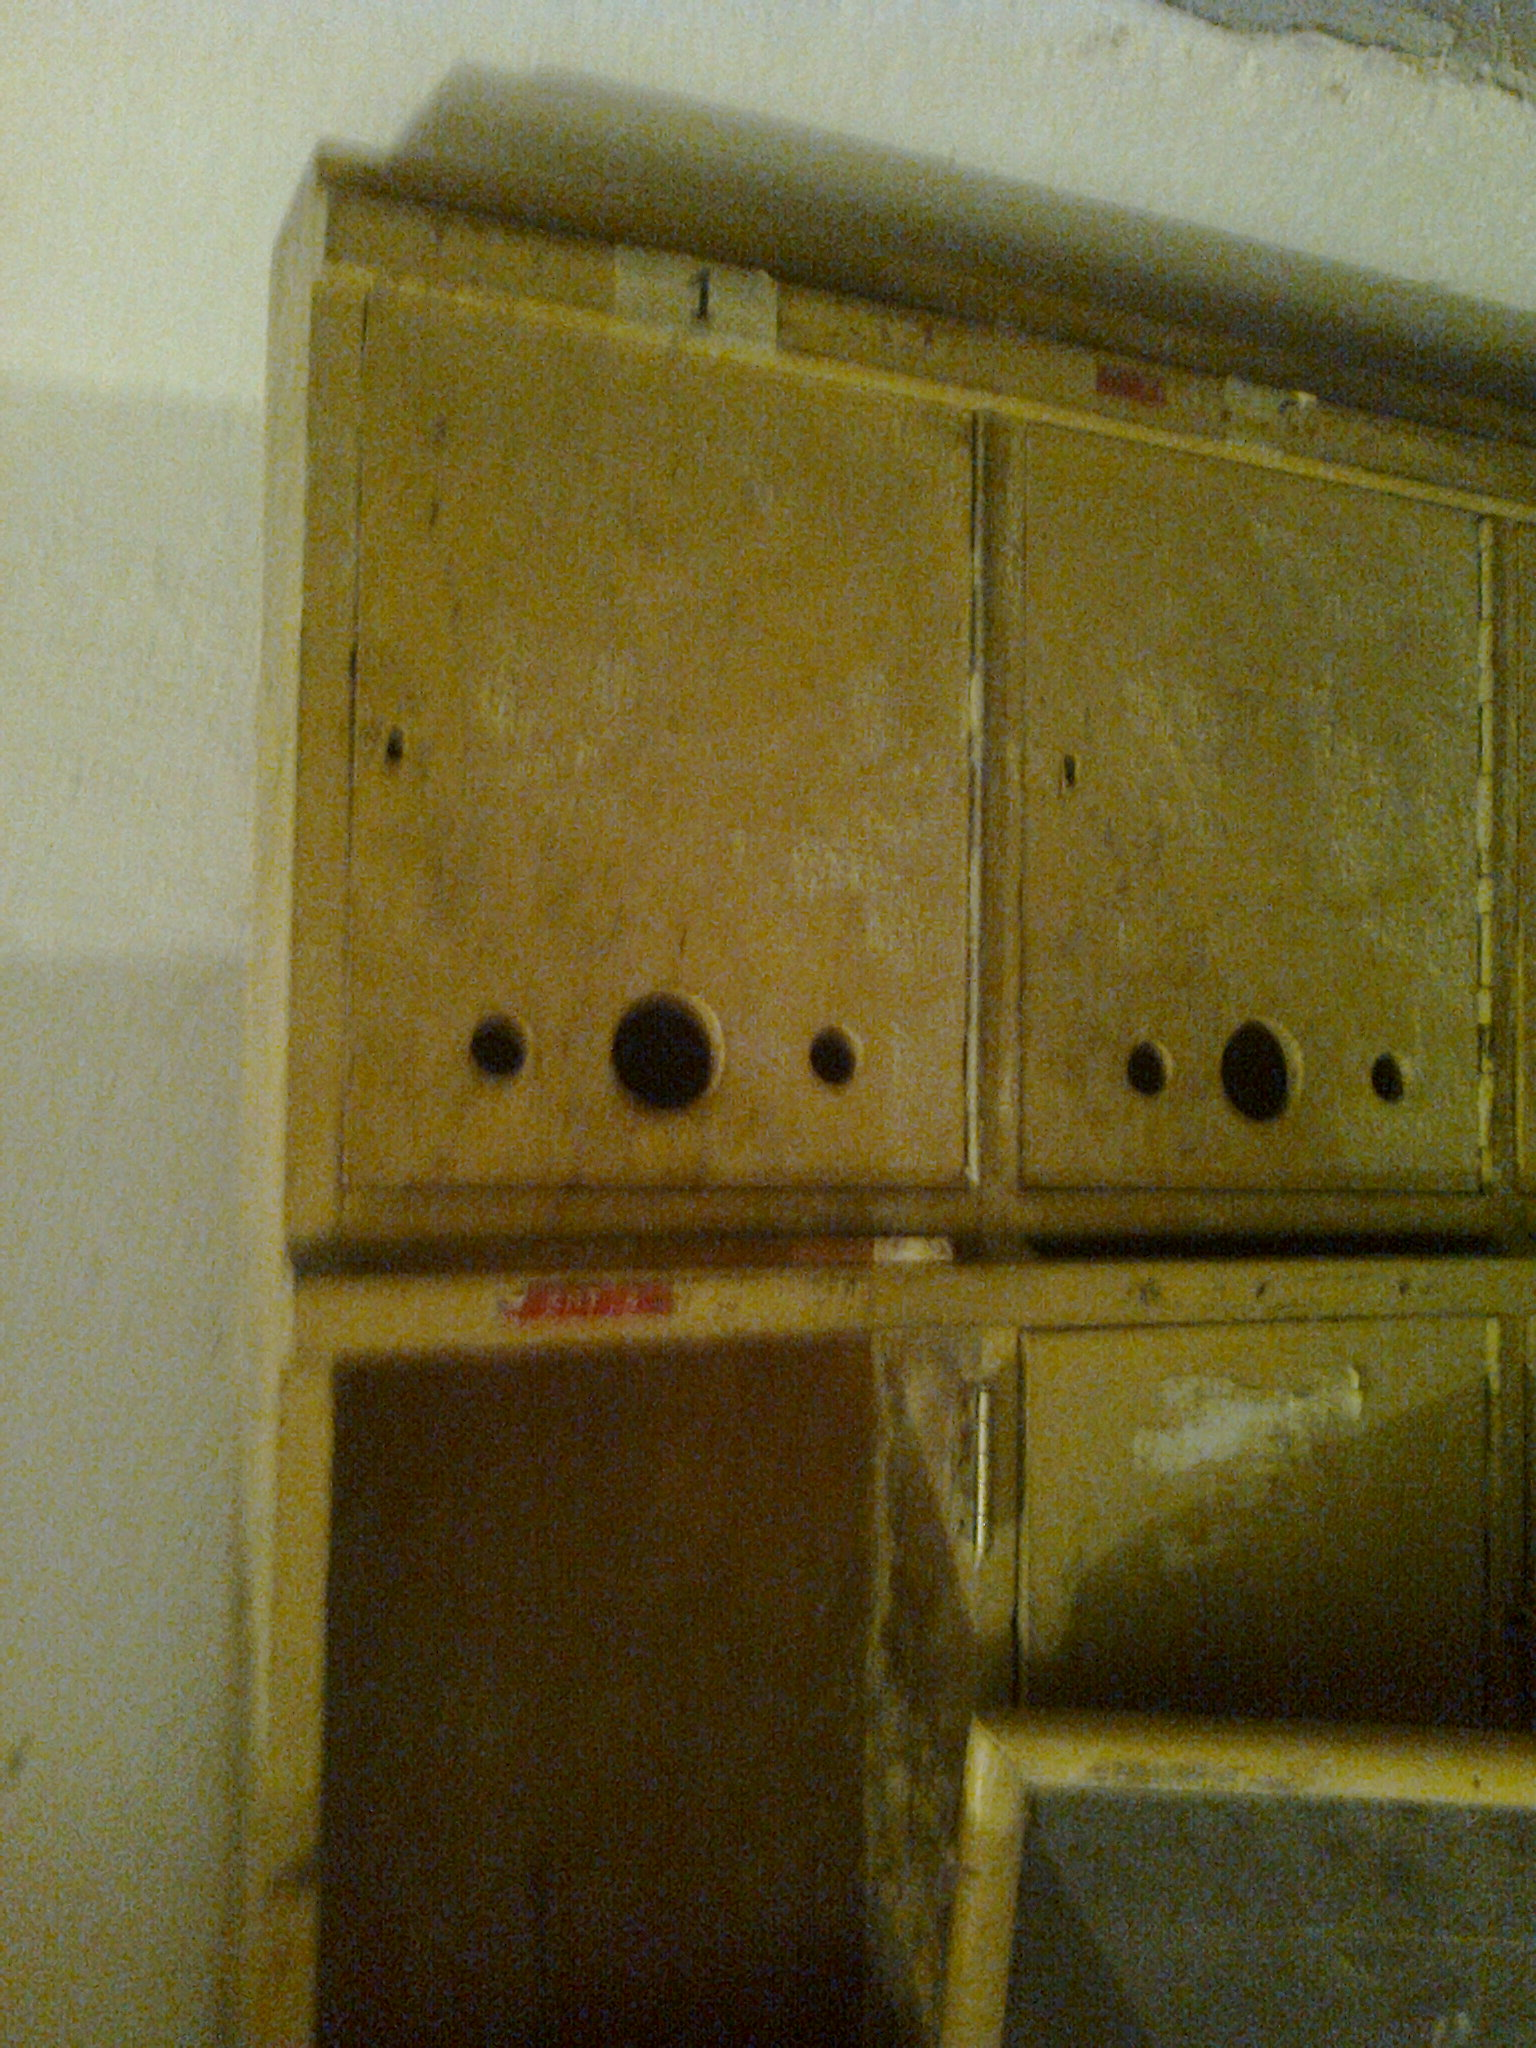 Plywood Mailboxes for Apartment Building: 9 Steps (with Pictures)